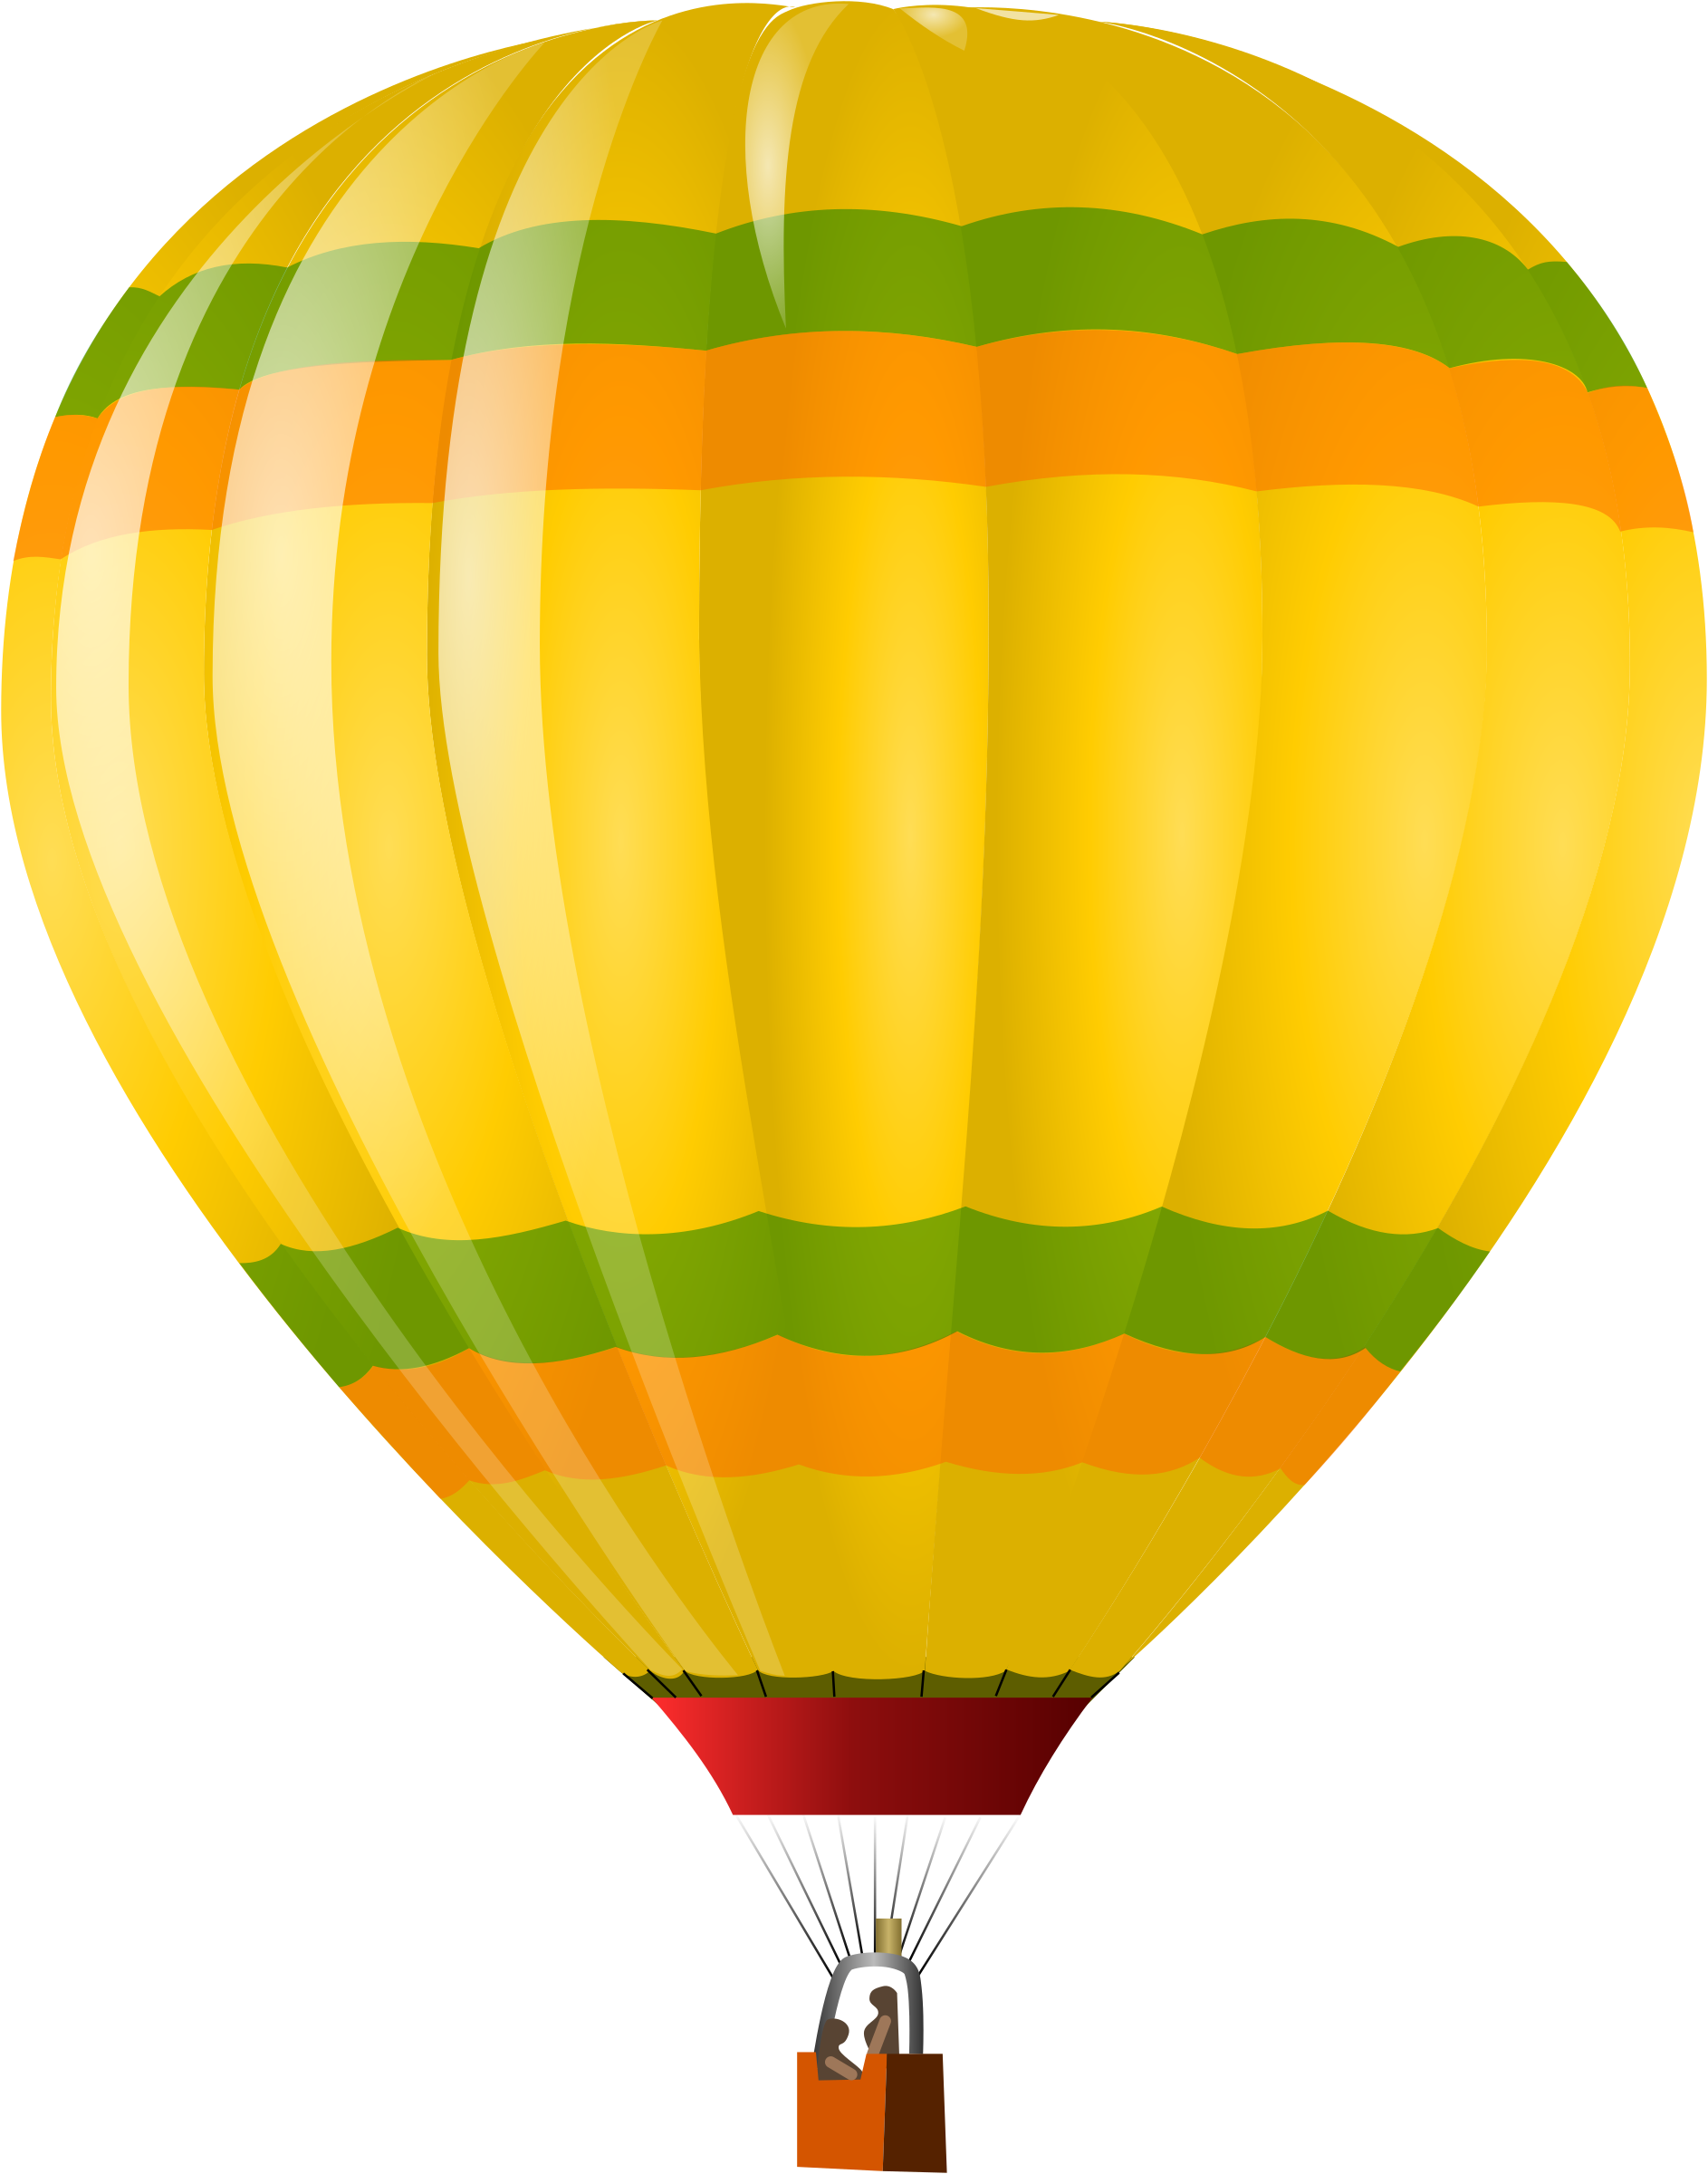 Hd Air Balloon Png Transparent Background image #46767